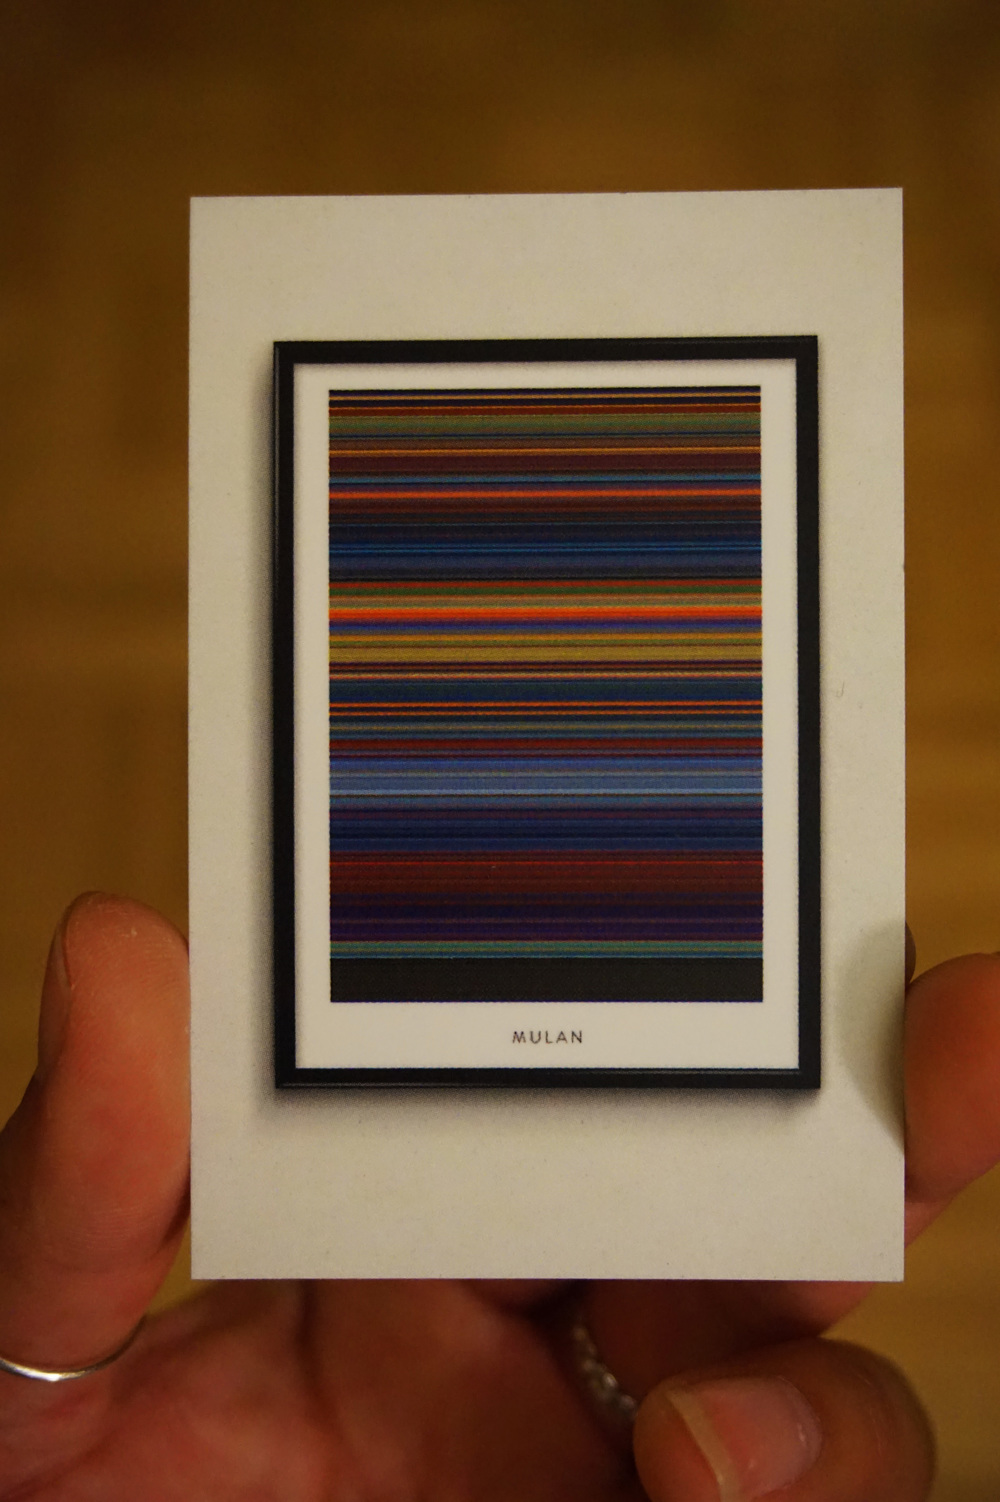 Little movie posters made from every scene in the movie represented by a color